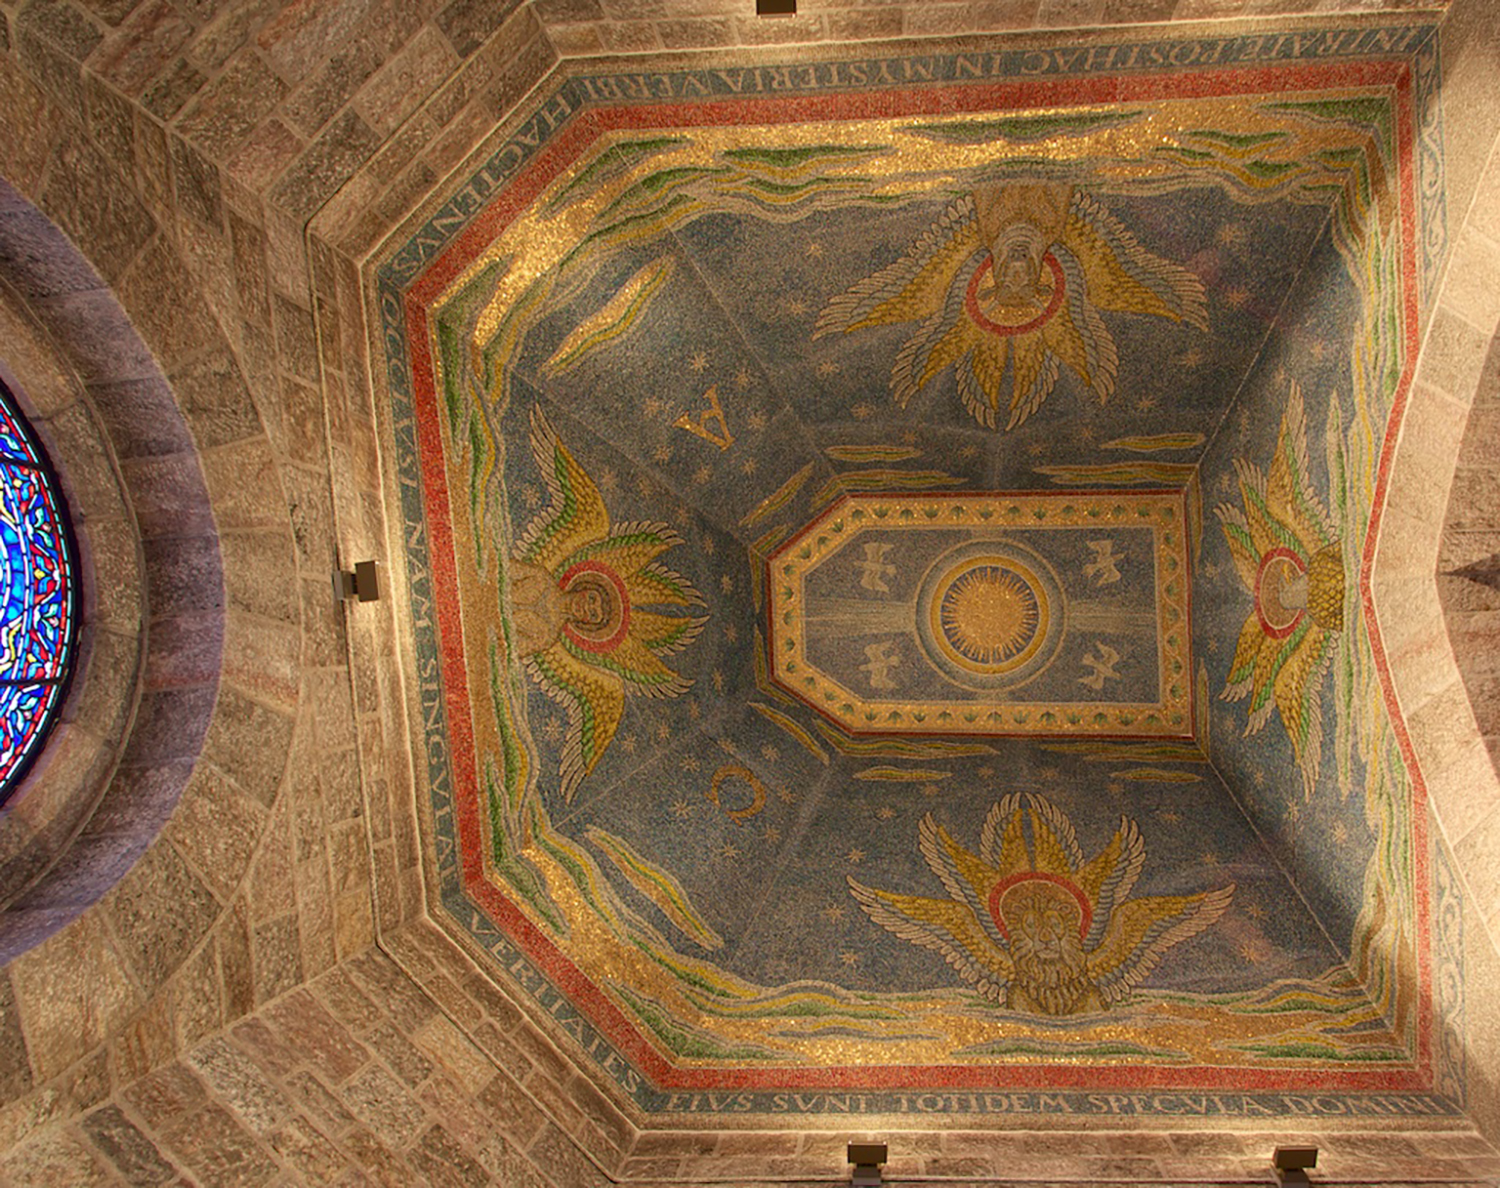 Figure 7: The chapel ceiling on the fifth floor has mosaic designs from the Book of Revelation.